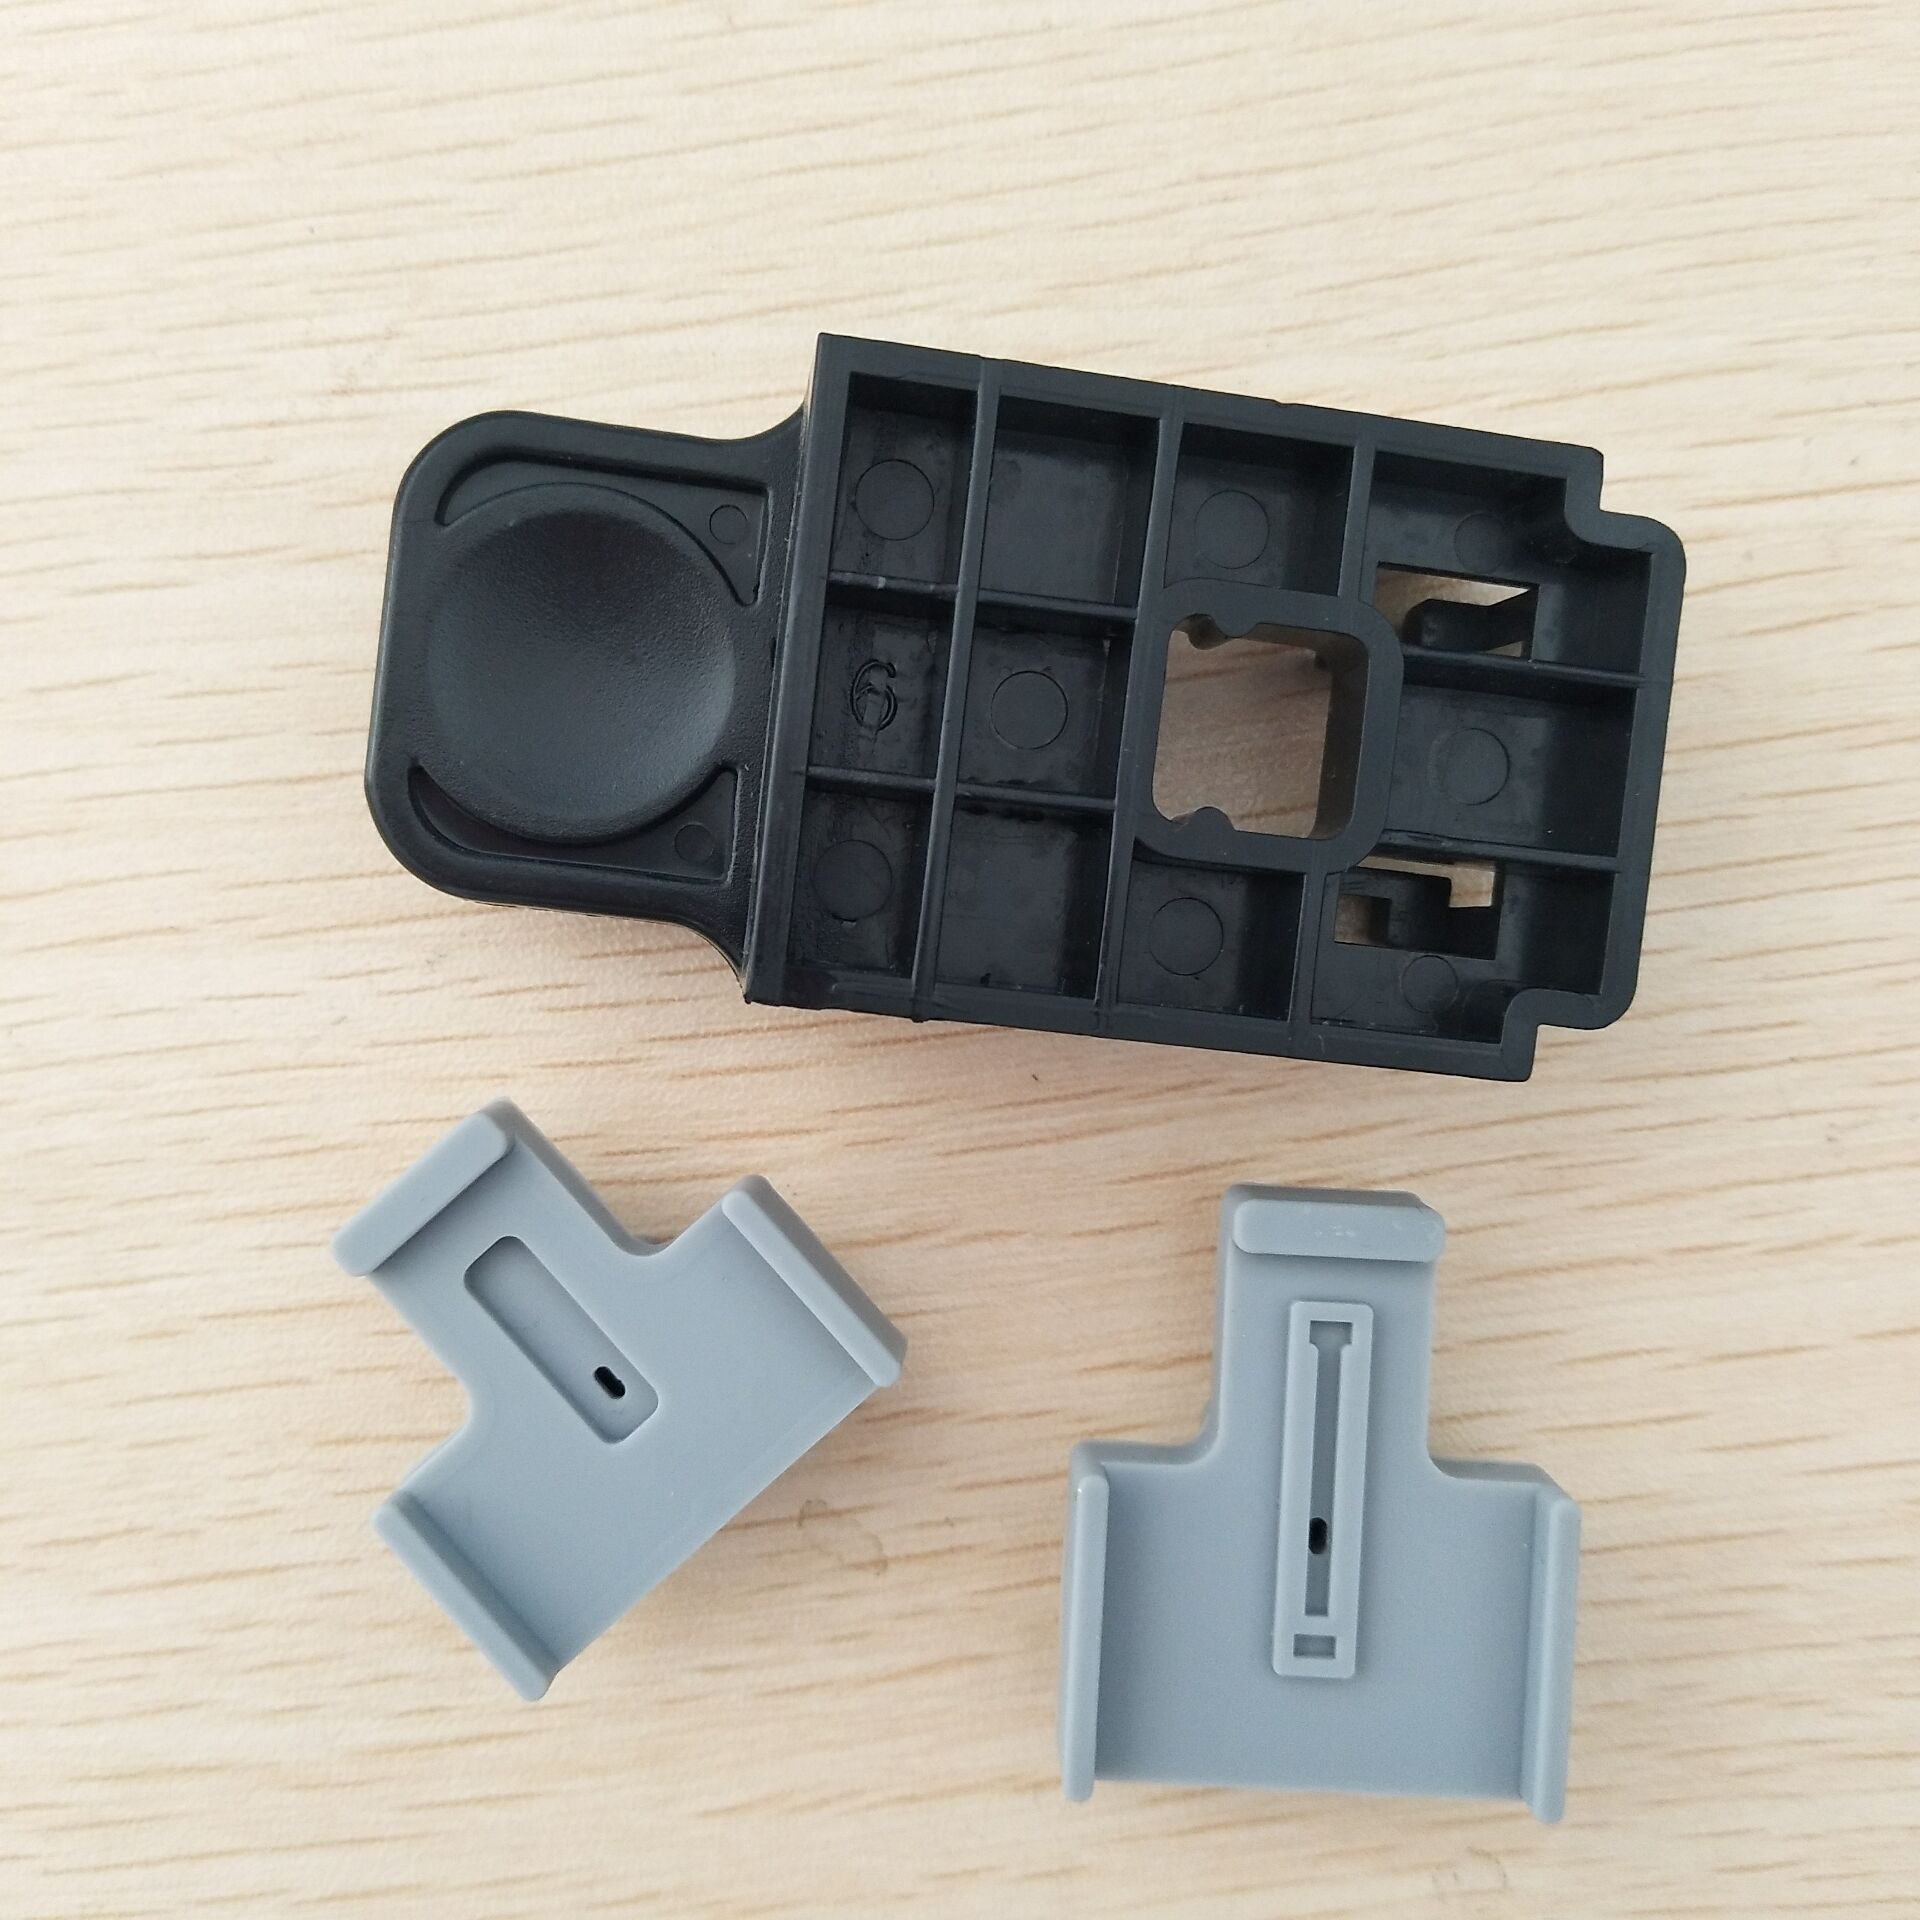 INK WAY New clips for HP remanufatured ink cartridges with printhead like for HP300 301XL 302XL